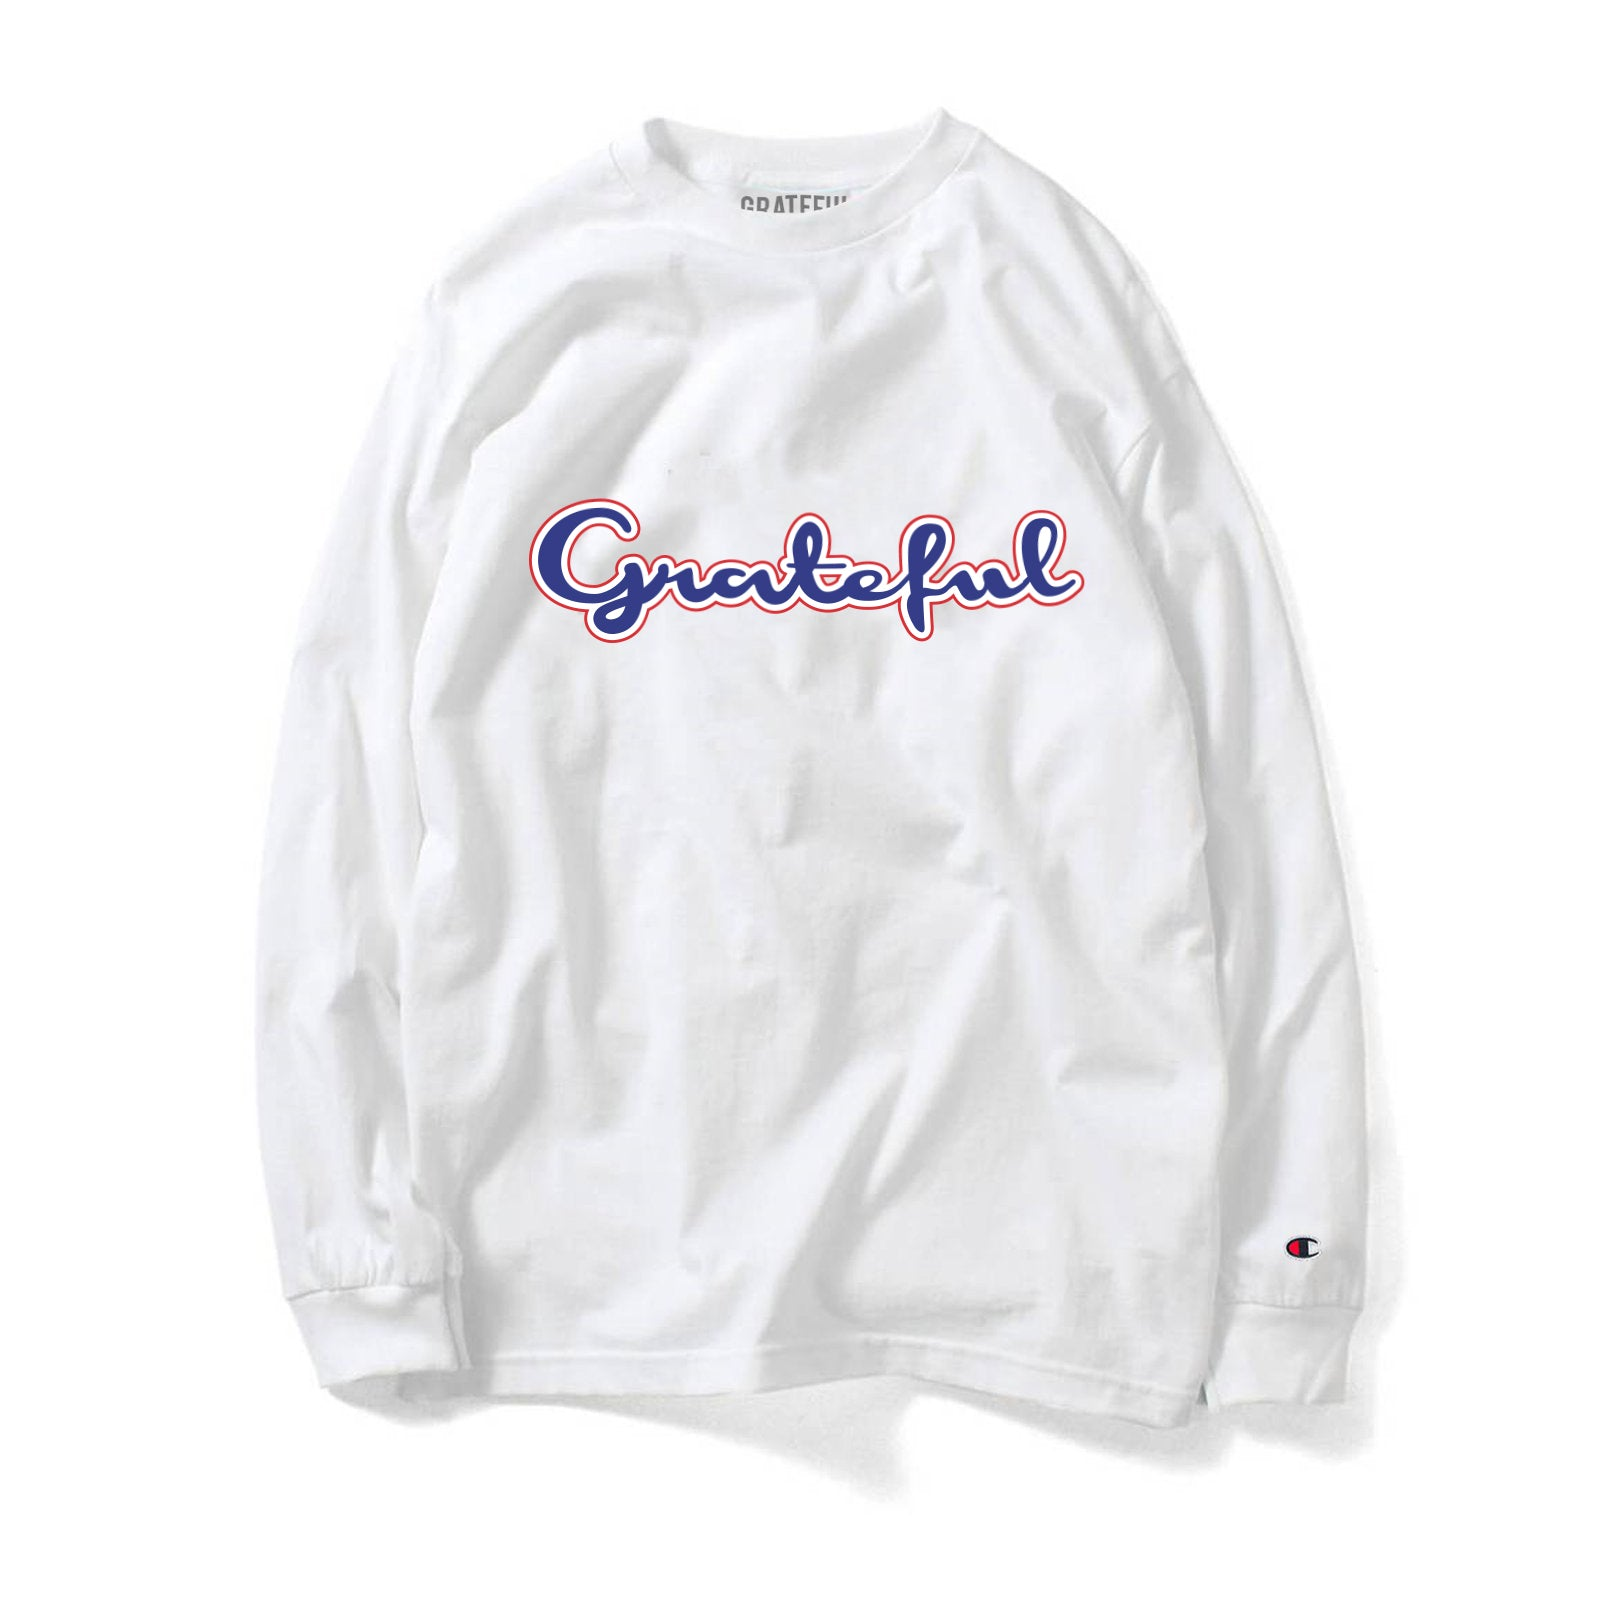 7a5e0dcc1 Grateful Champion Script 3.0 Long Sleeve Tee    White – GRATEFUL APPAREL